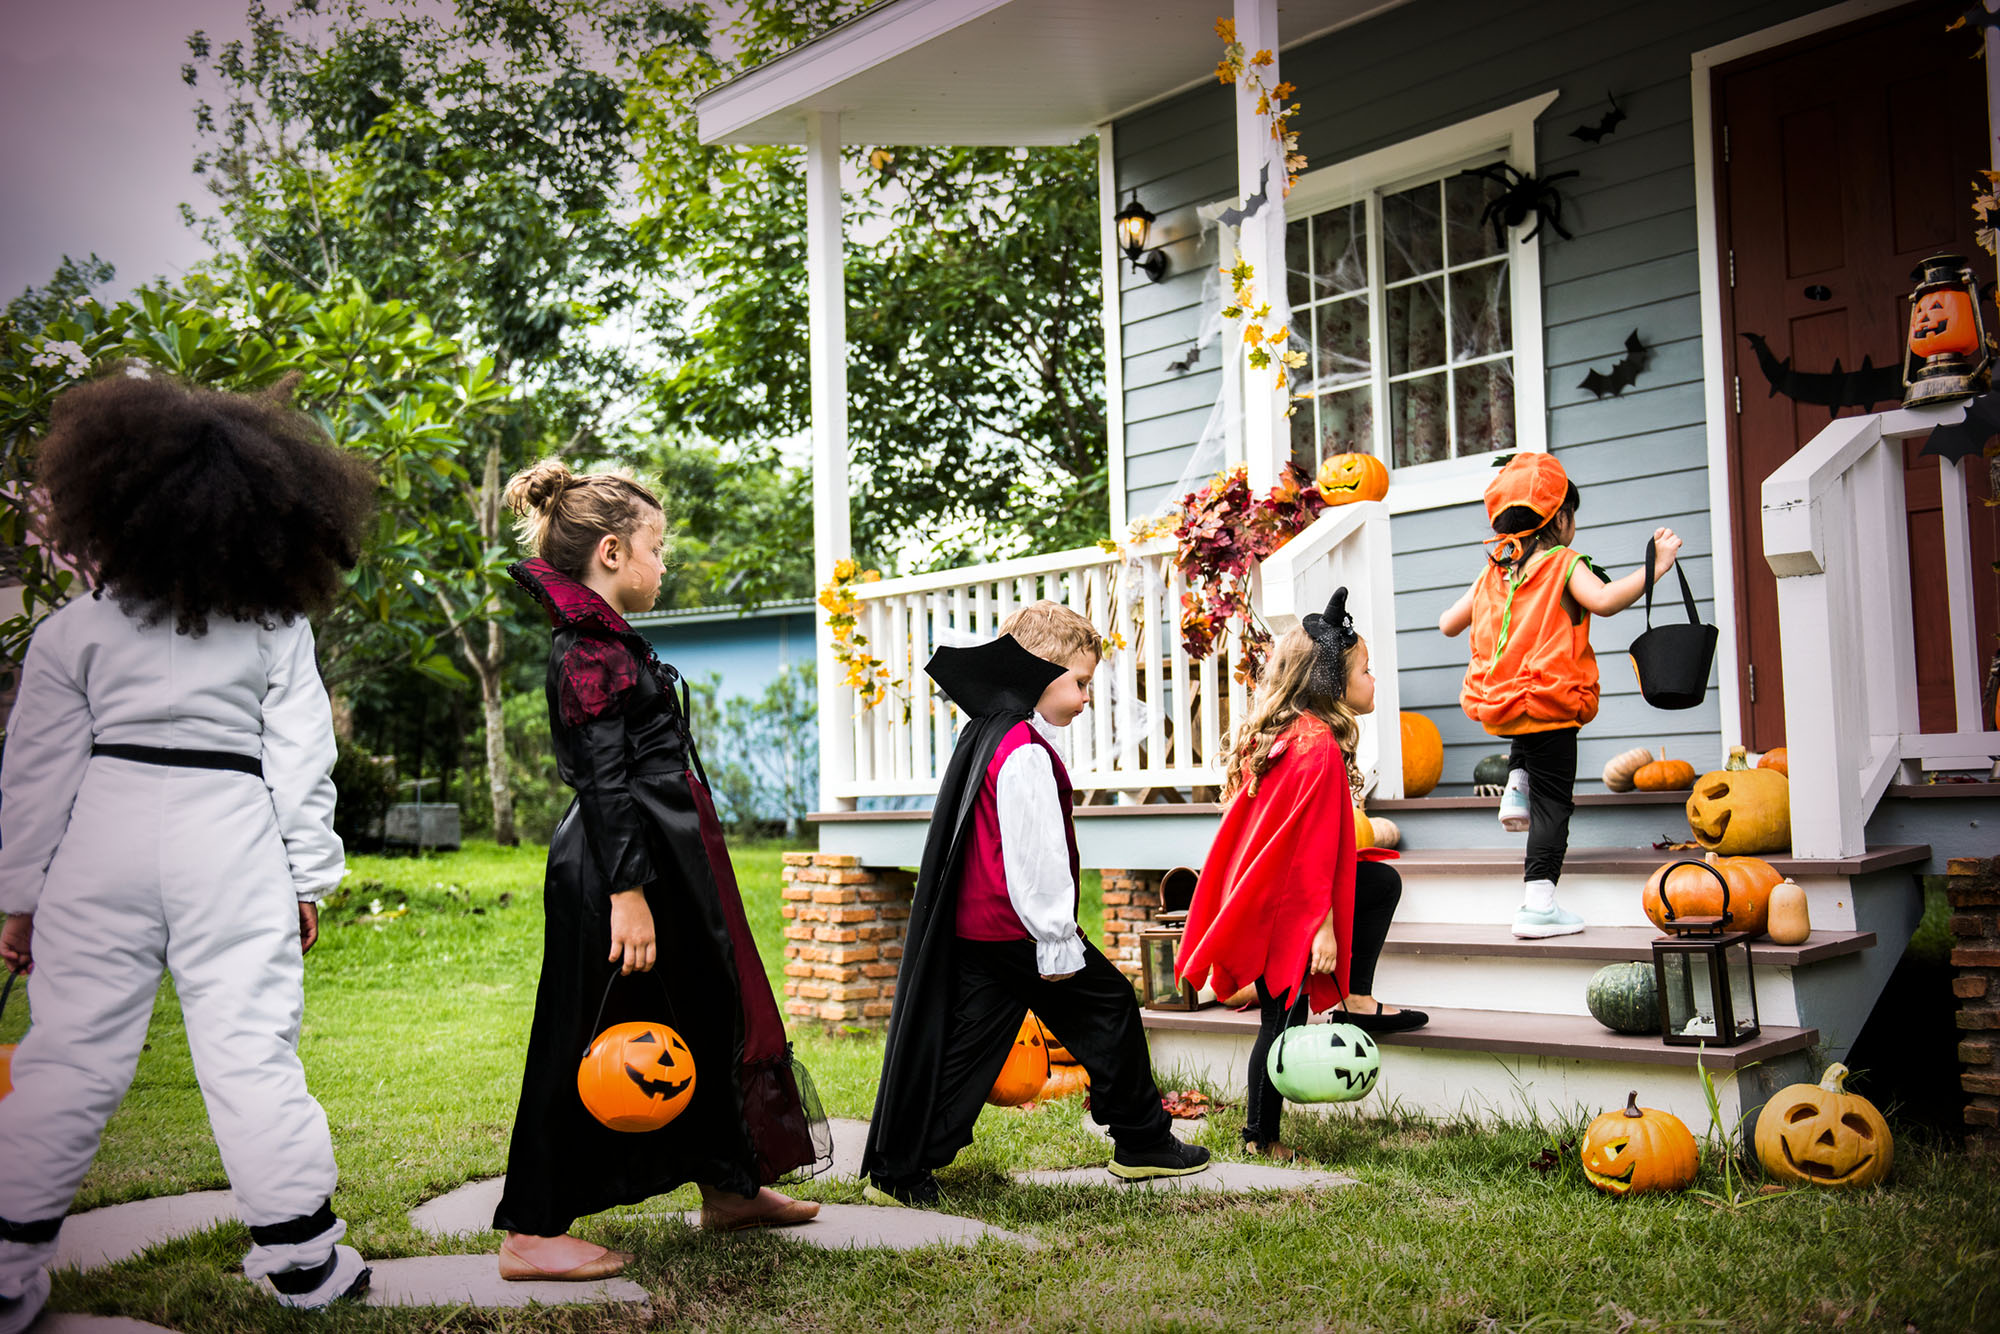 Trick-or-treaters in costumes approaching the front door of a house